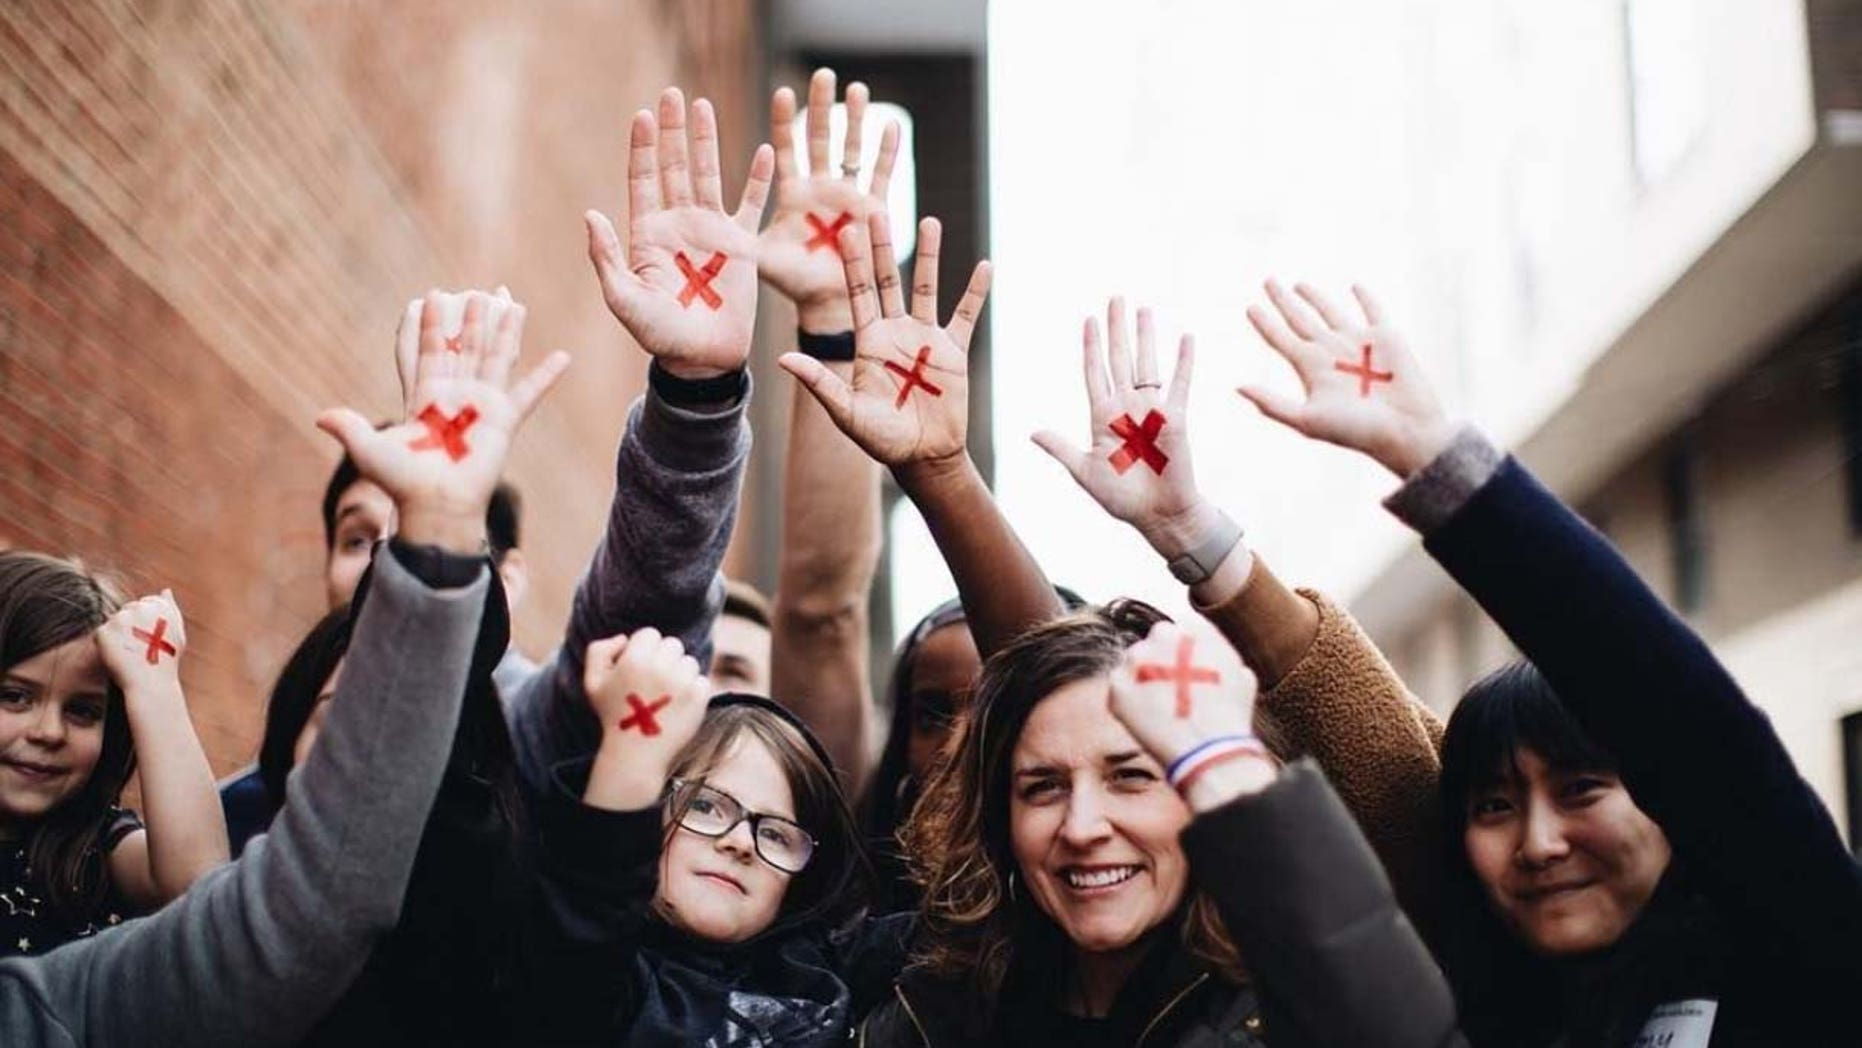 """People put a red X on their hand to raise awareness for the """"End It Movement,"""" in an effort to end modern-day slavery."""